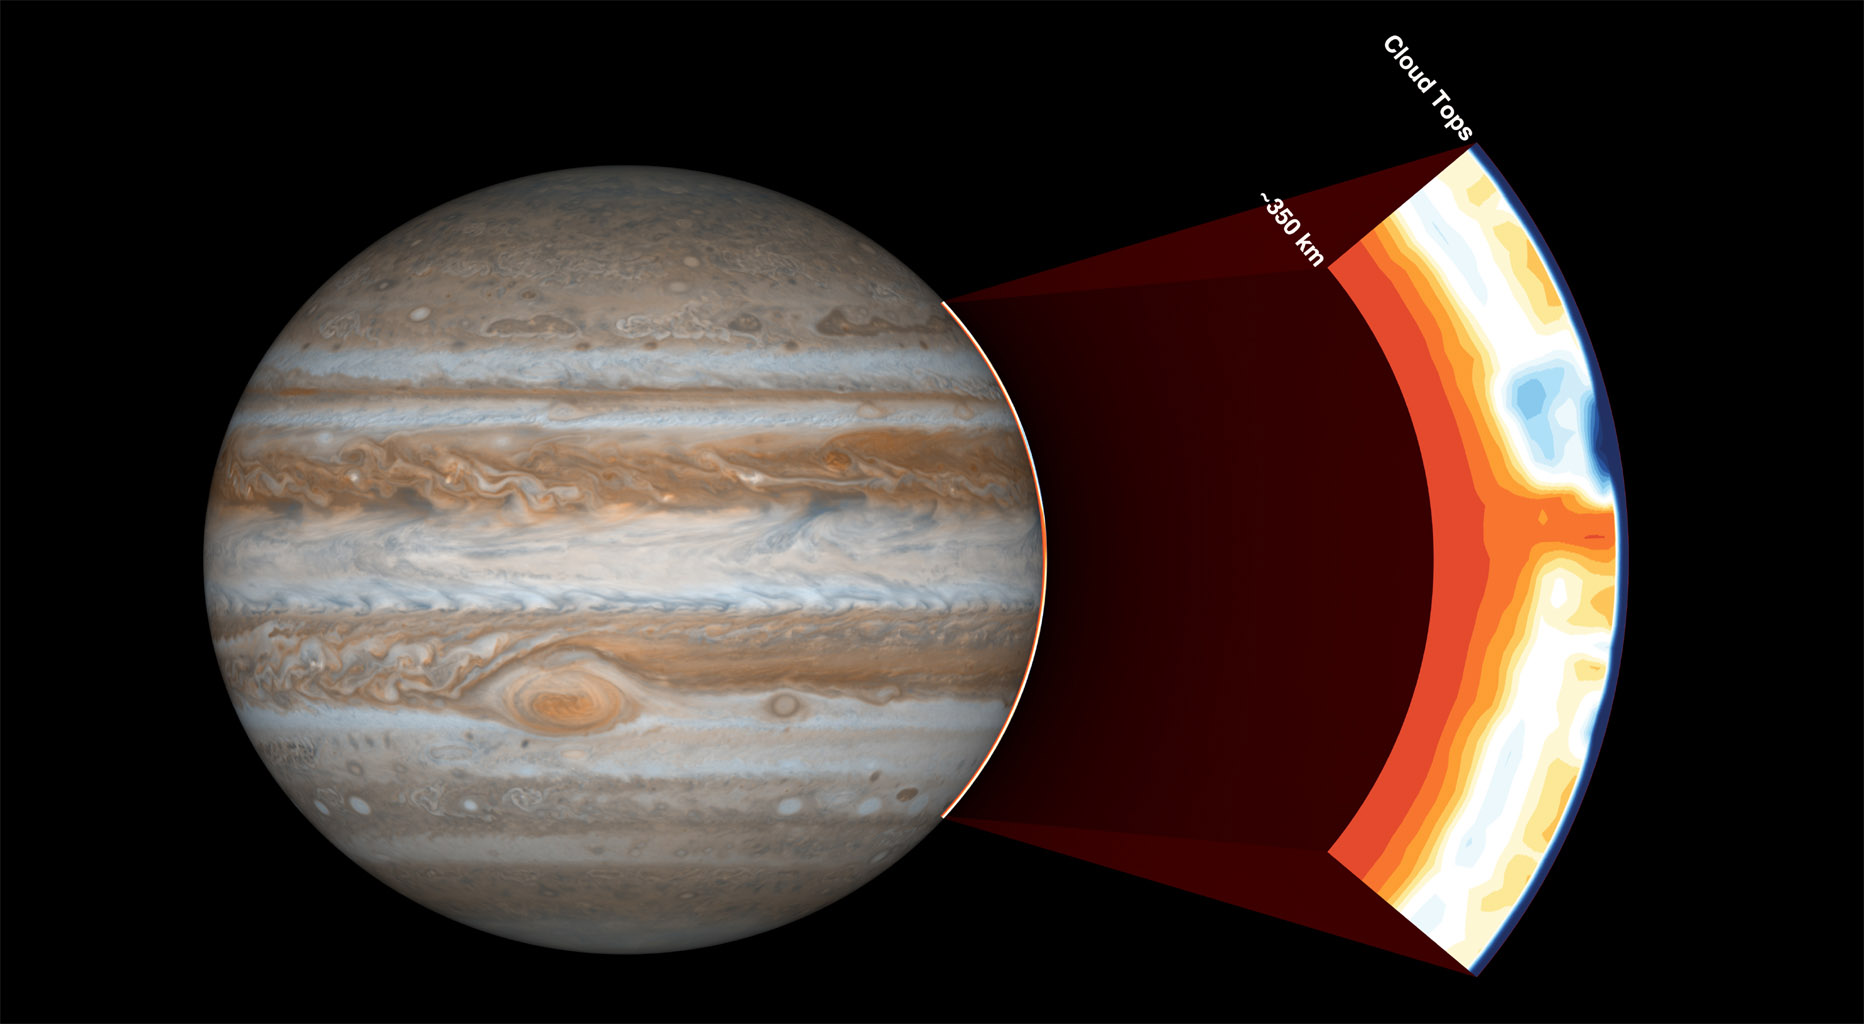 NASA's Juno spacecraft carries an instrument called the Microwave Radiometer, which examines Jupiter's atmosphere beneath the planet's cloud tops. This image shows the instrument's view of the outer part of Jupiter's atmosphere.